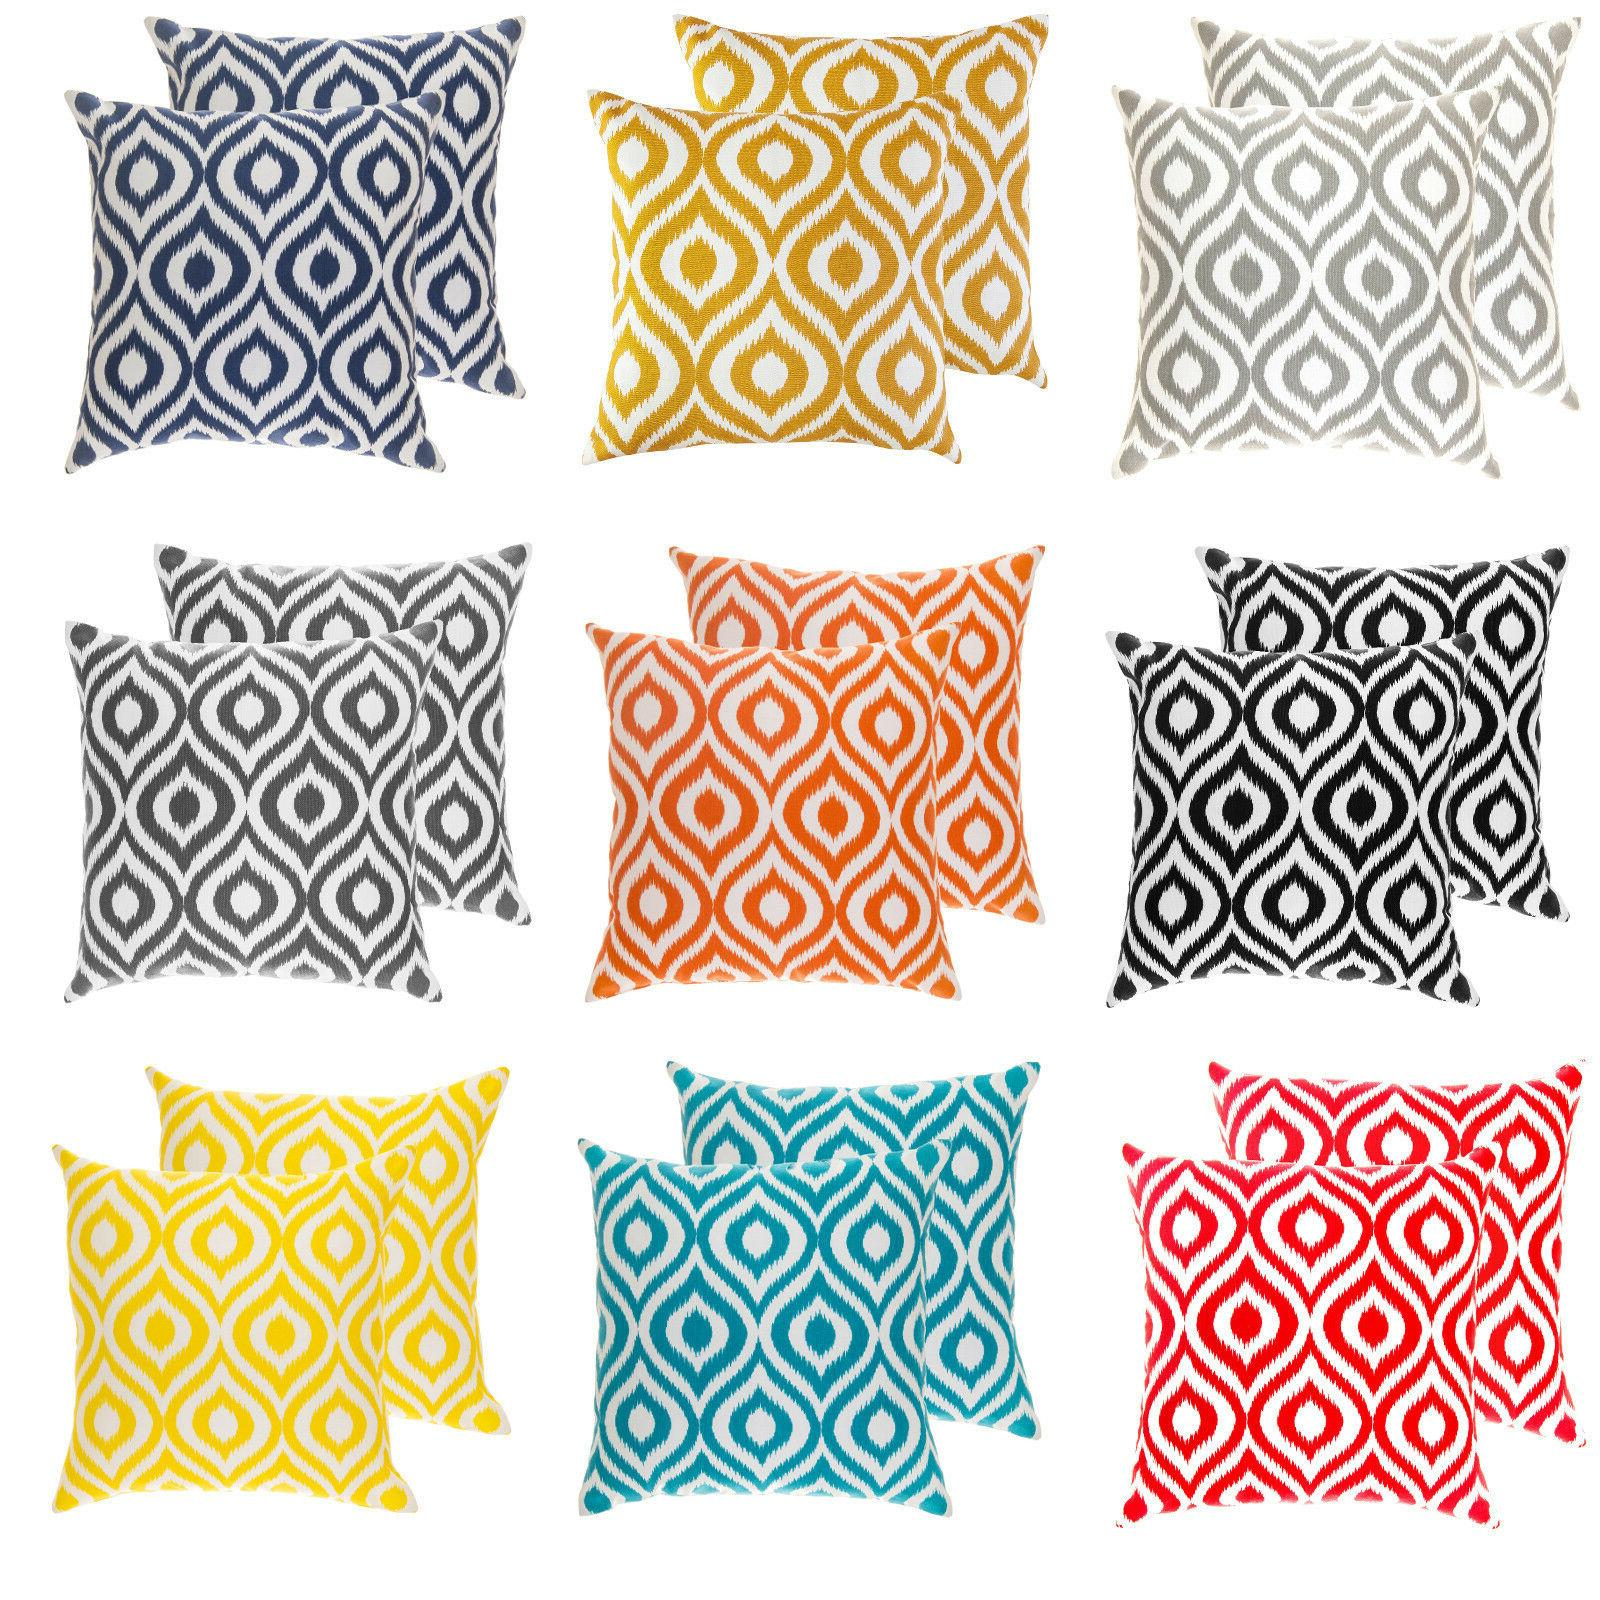 2 pack throw pillow cushion covers in